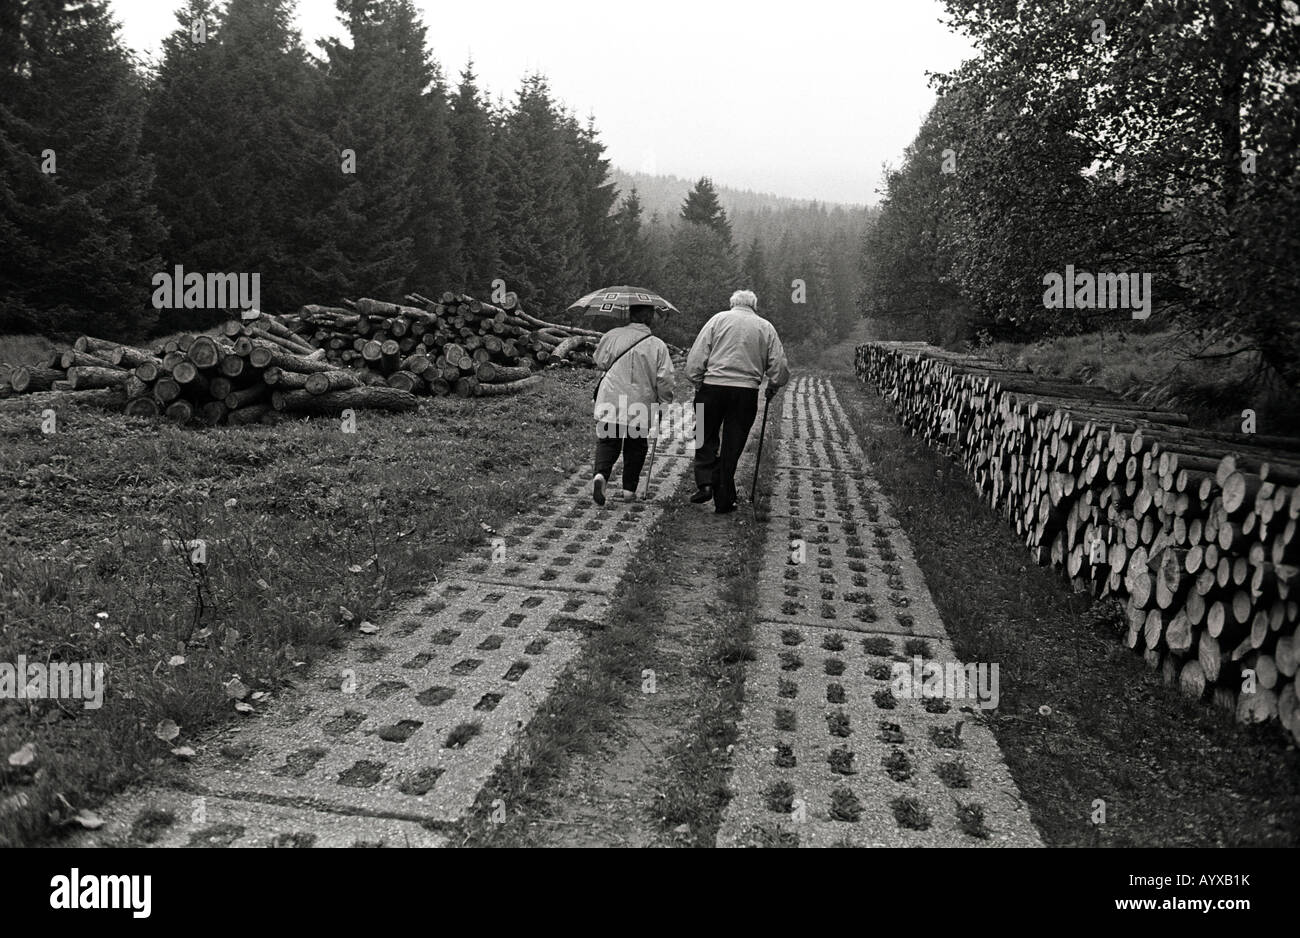 GERMANY DDR BORDER TANK TRACKS WALKING EXERCISE FOREST RELAXATION HARZ MOUNTAINS - Stock Image